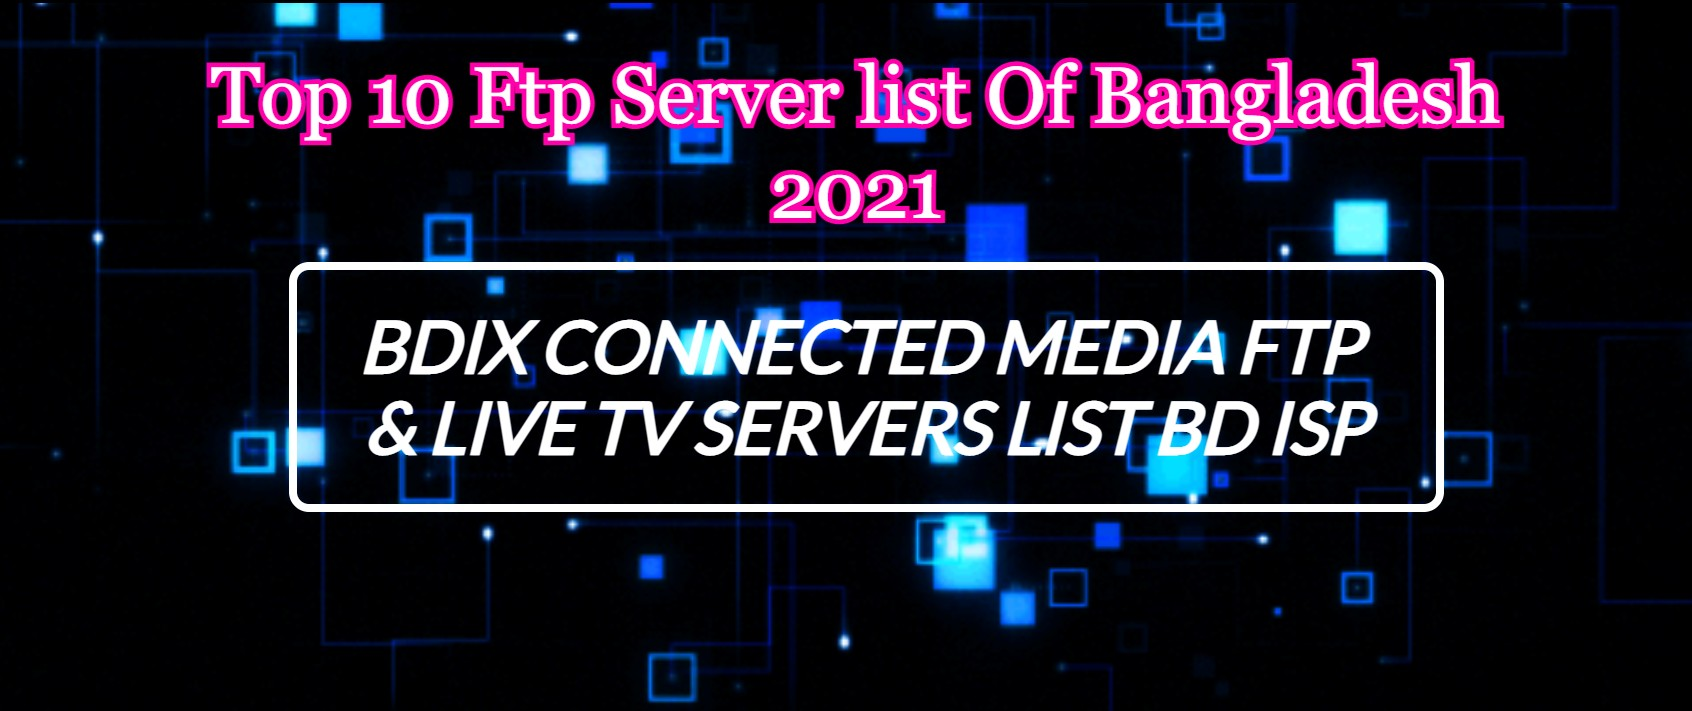 Top 10 Ftp Server list Of Bangladesh 2021